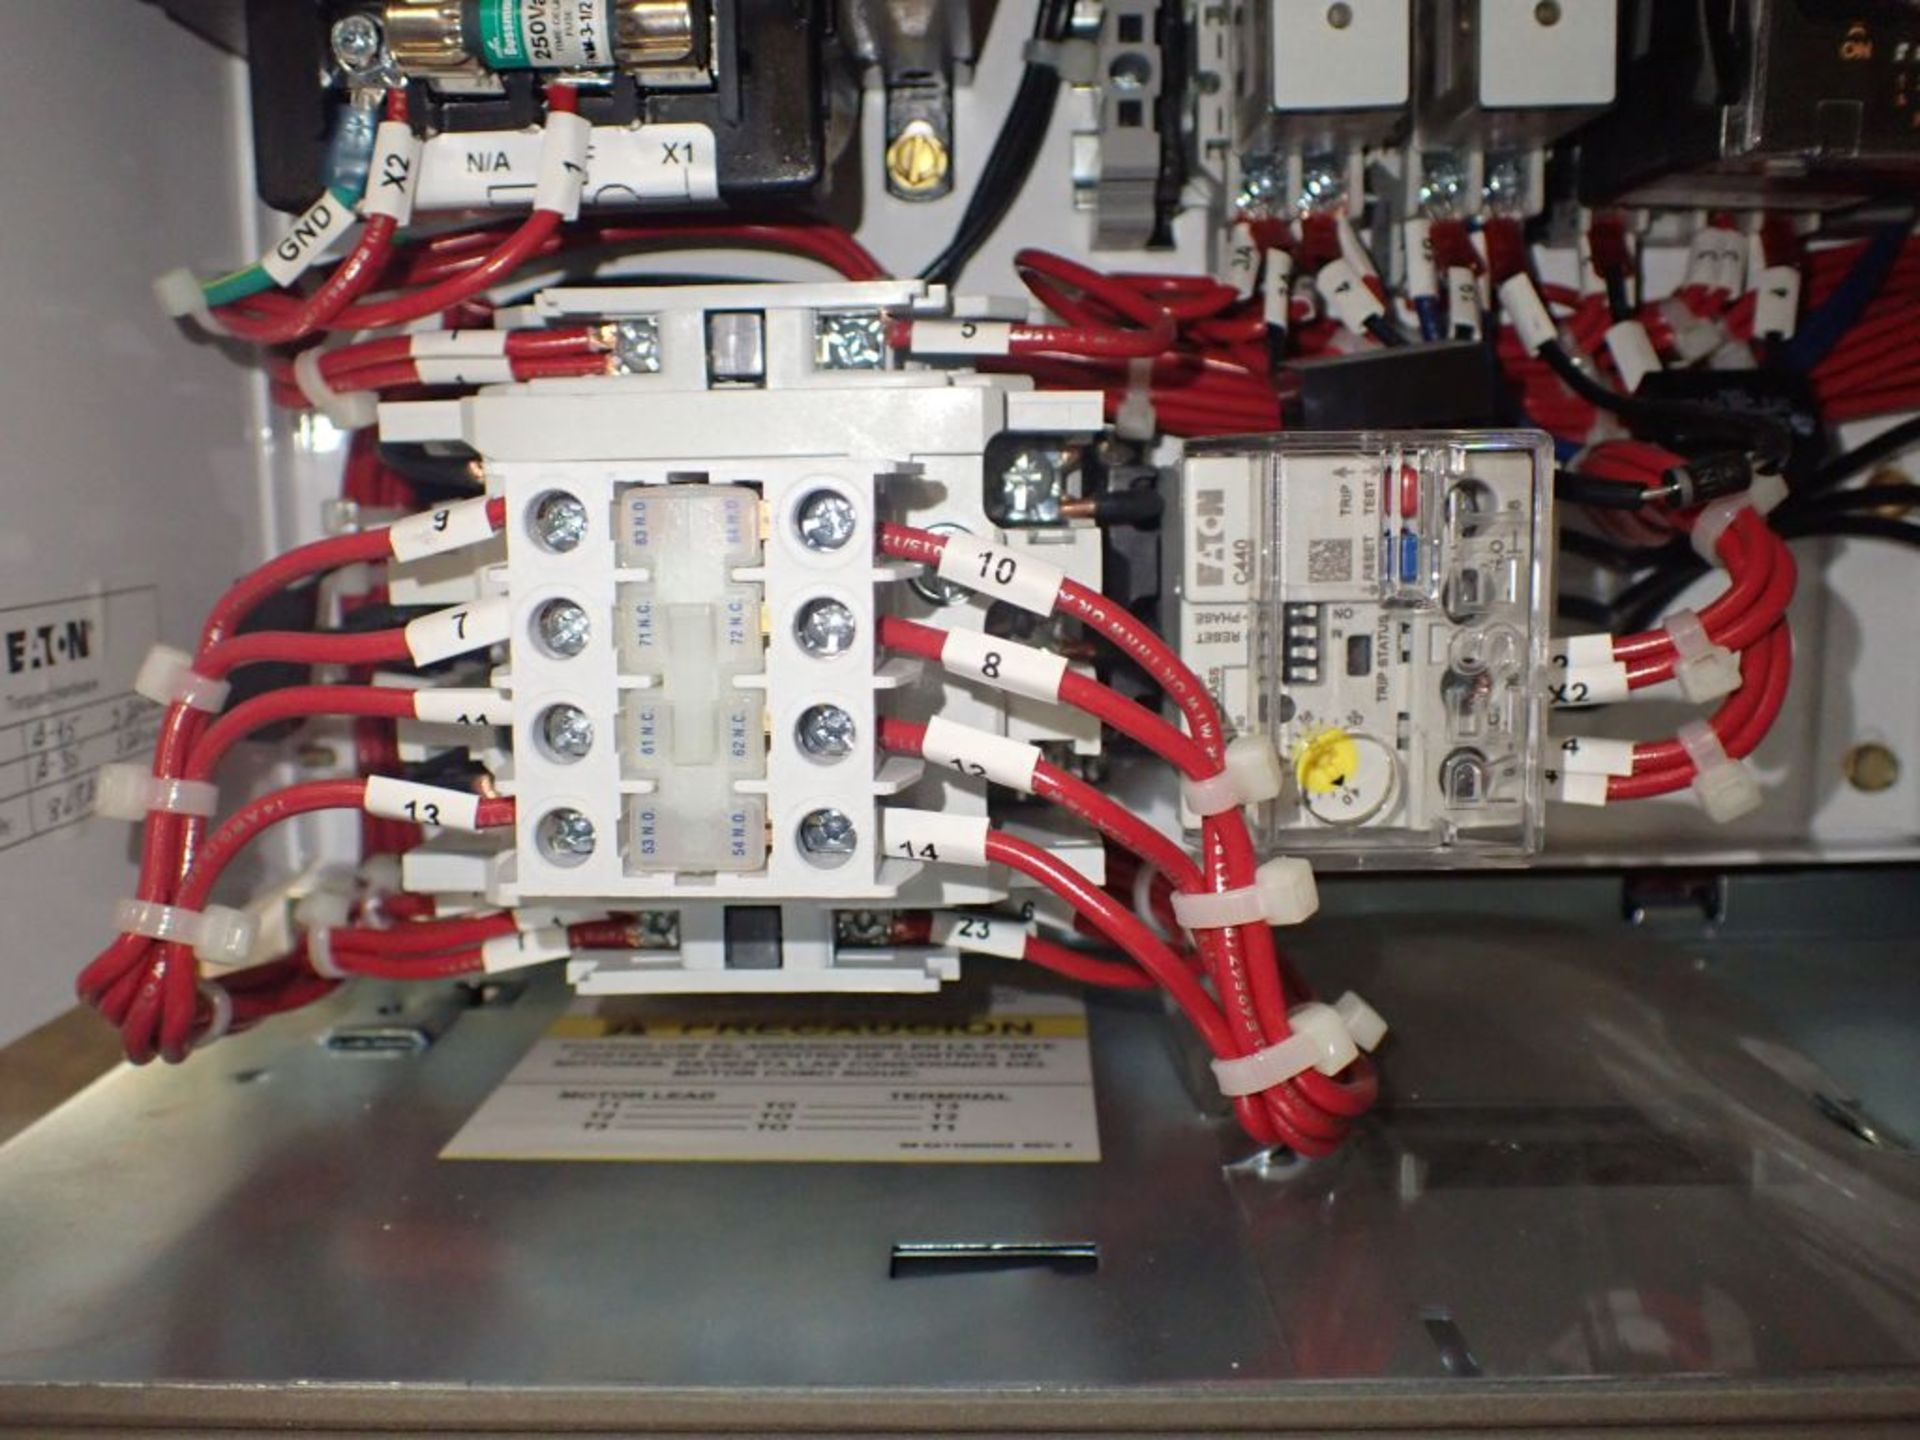 Eaton Freedom Flashgard Motor Control Center w/Components | (5) F206-15A-10HP; (4) F206-30A-10HP; ( - Image 53 of 84